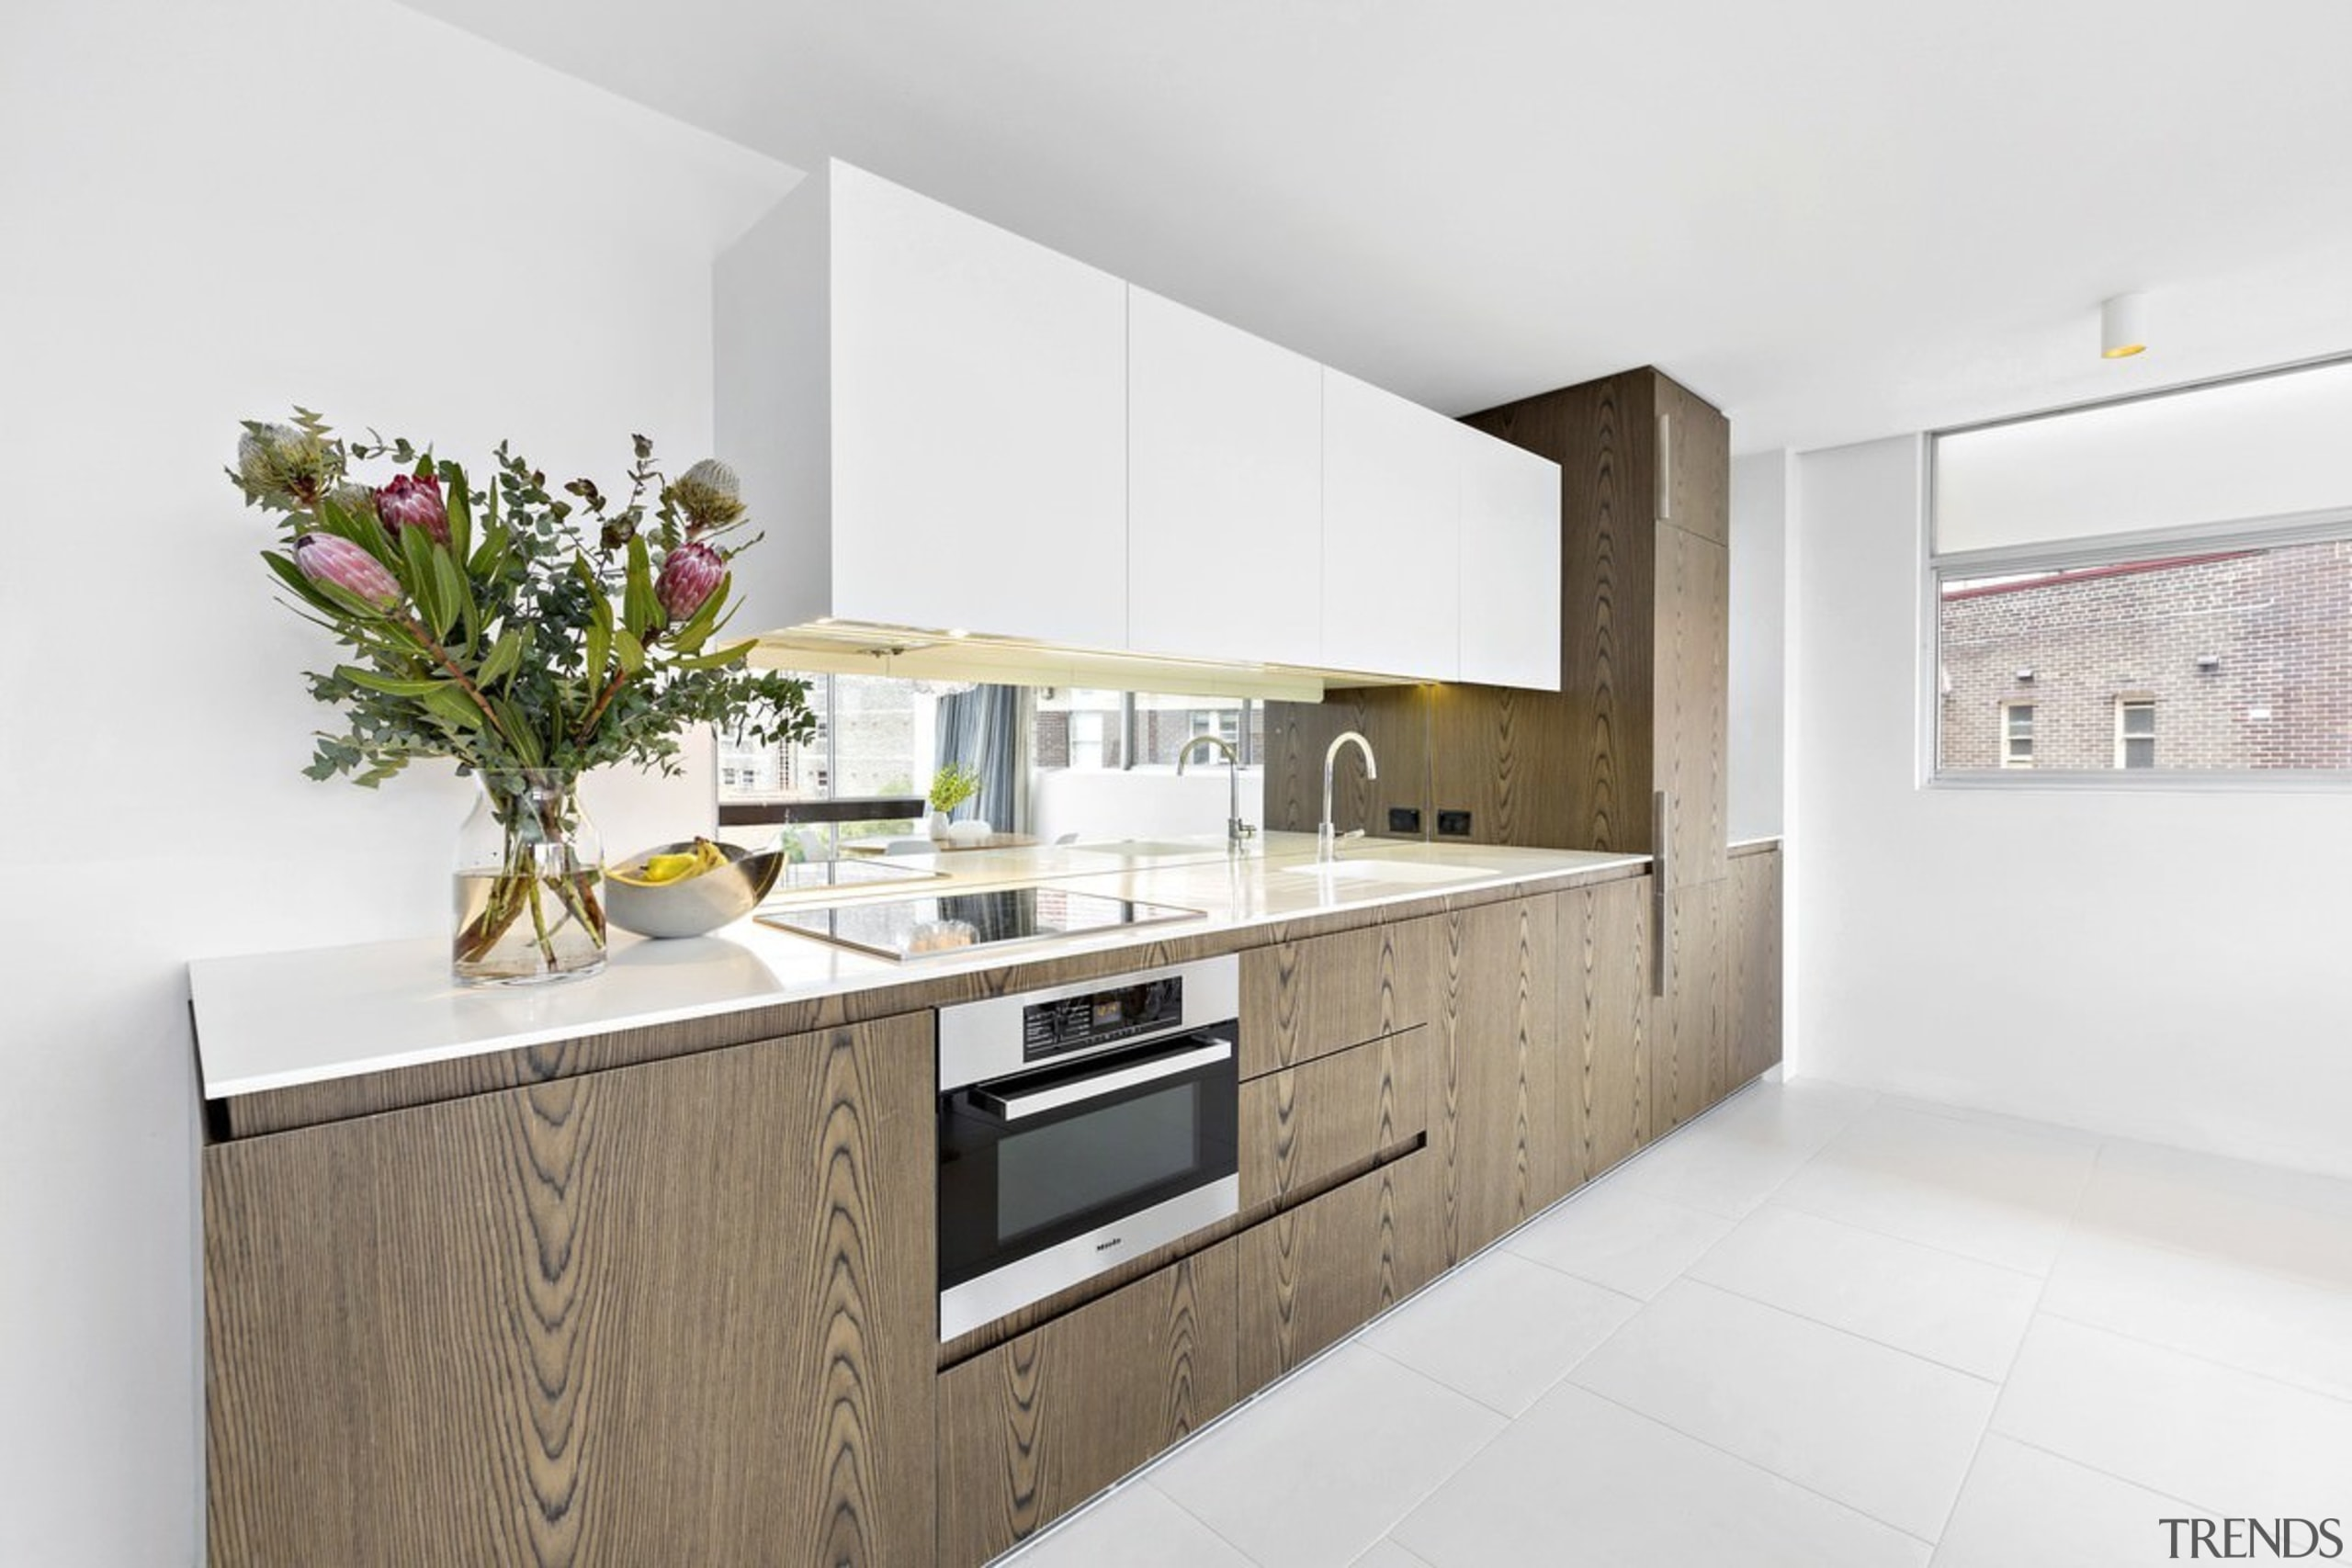 There's no shortage of natural light inside - countertop, interior design, kitchen, property, real estate, white